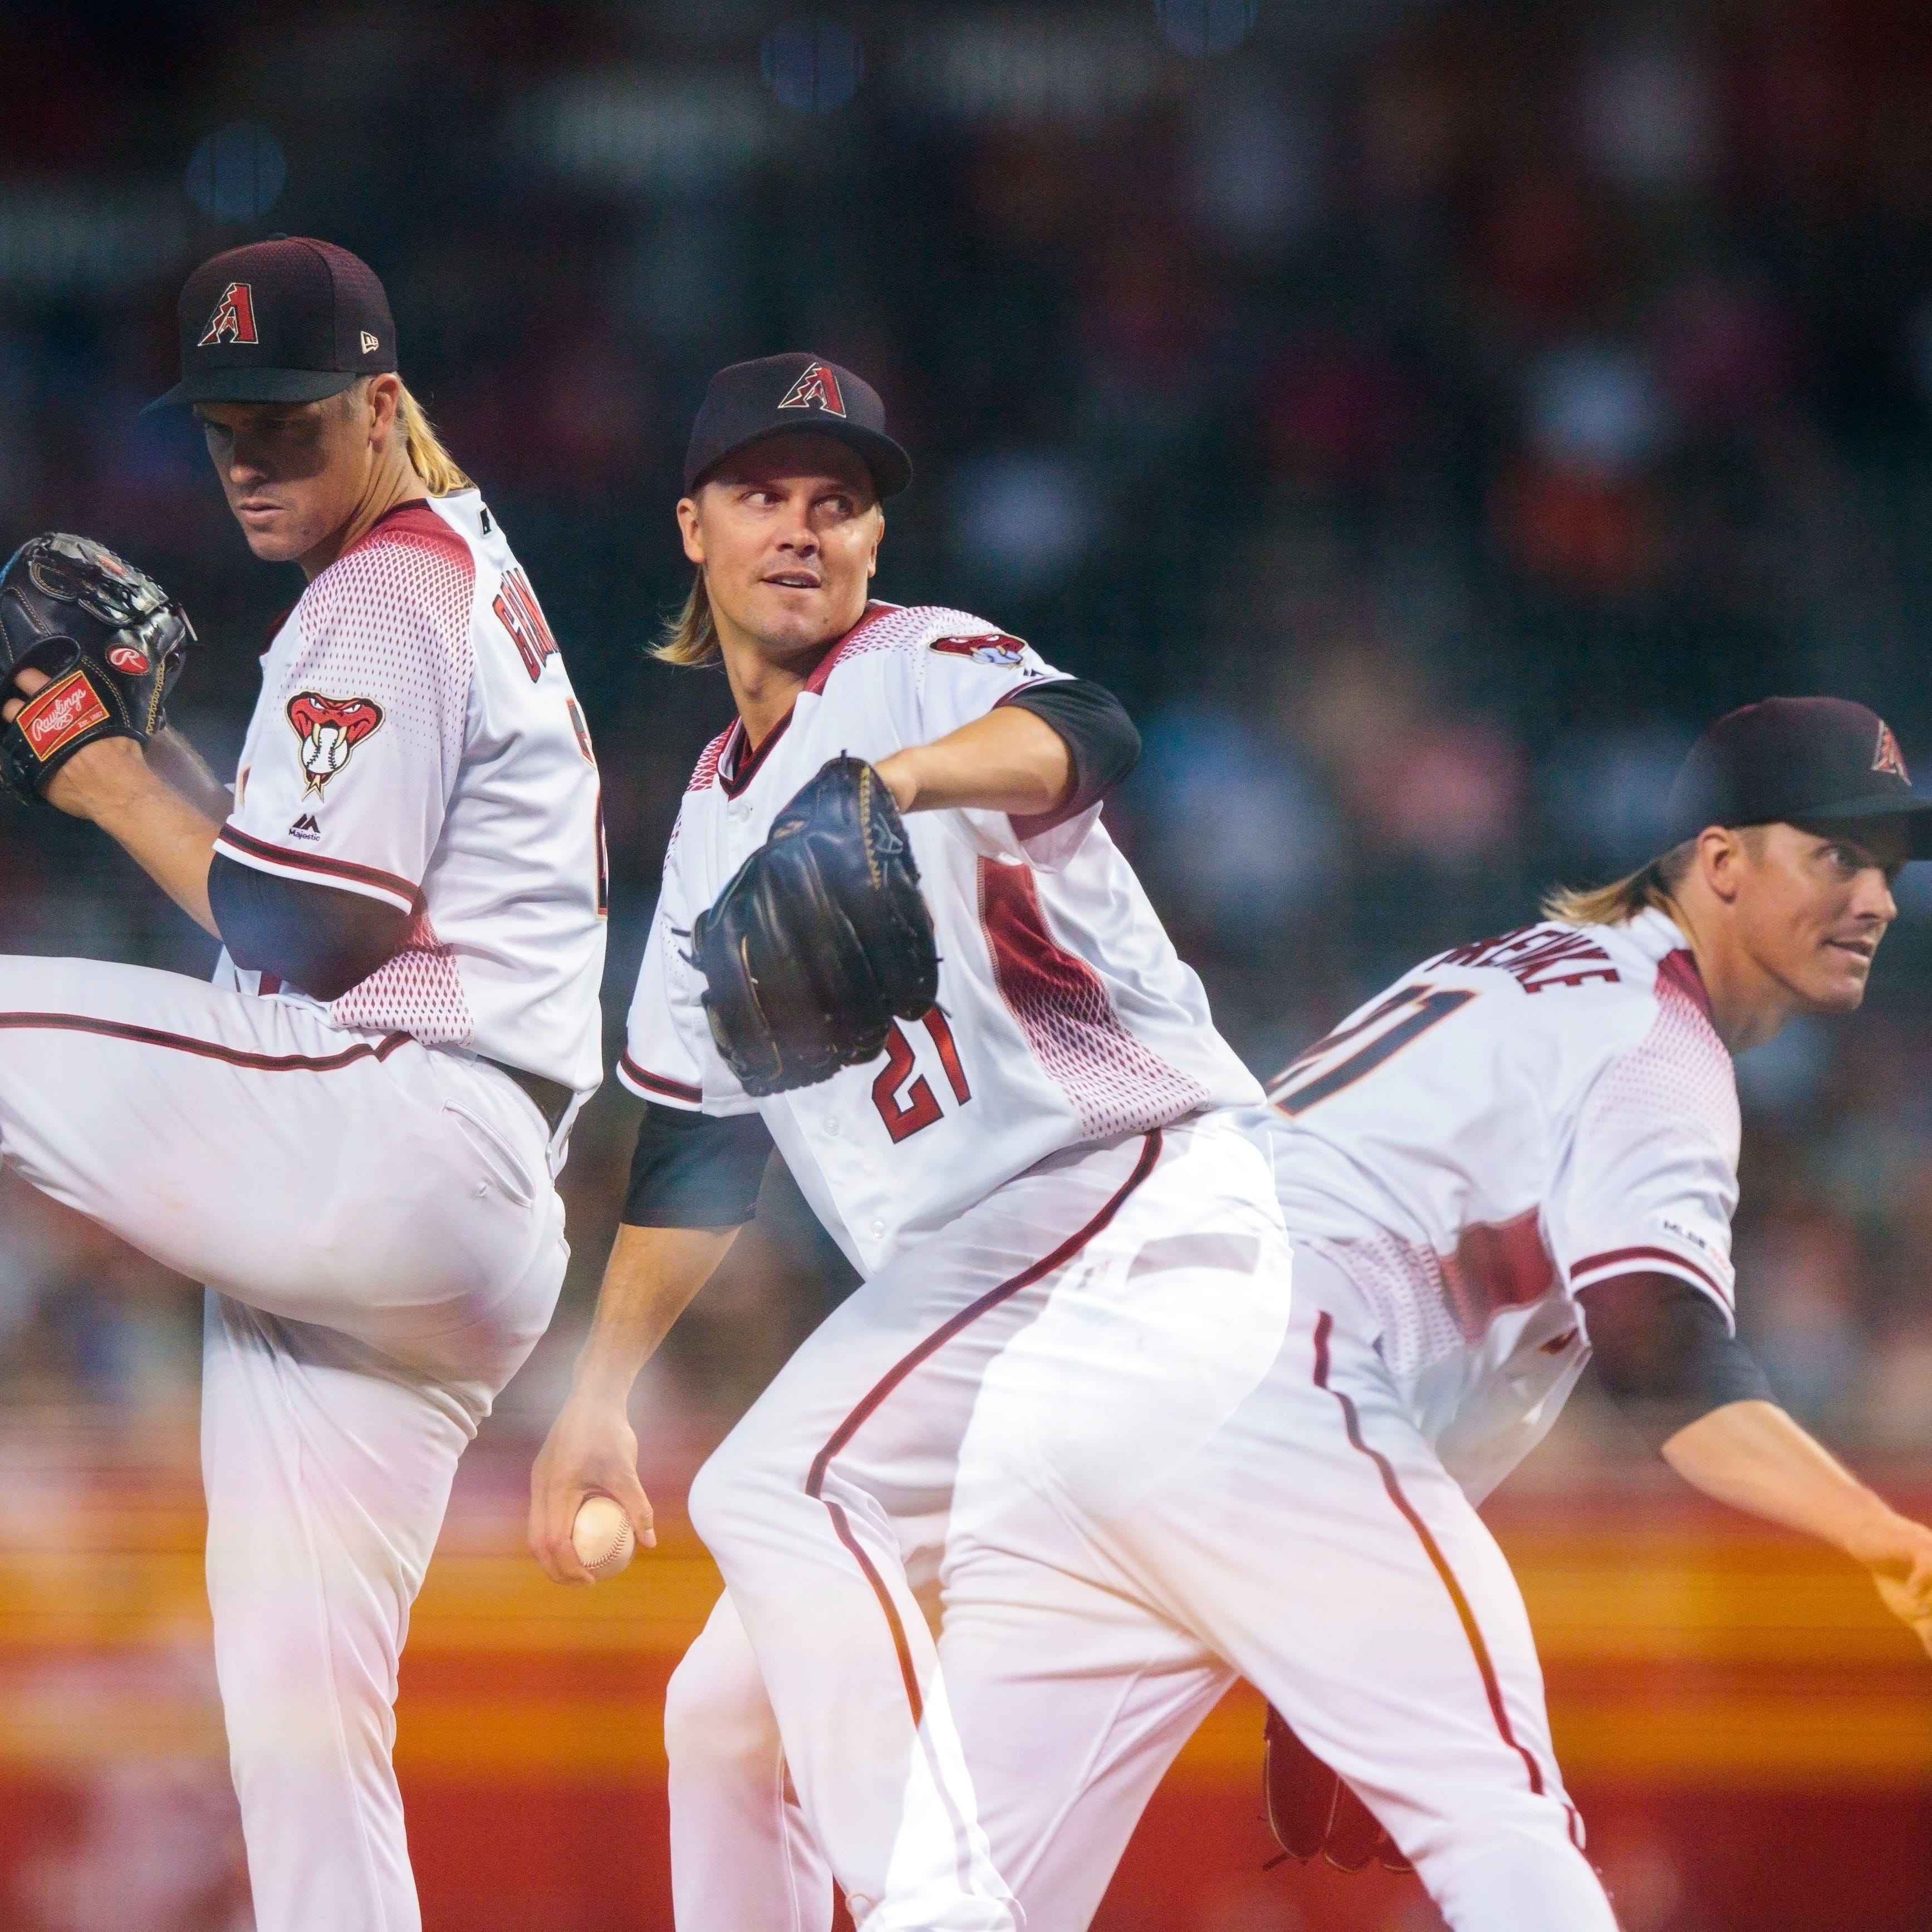 Zack Greinke trade rumors: Arizona Diamondbacks pitcher moved before MLB trade deadline?